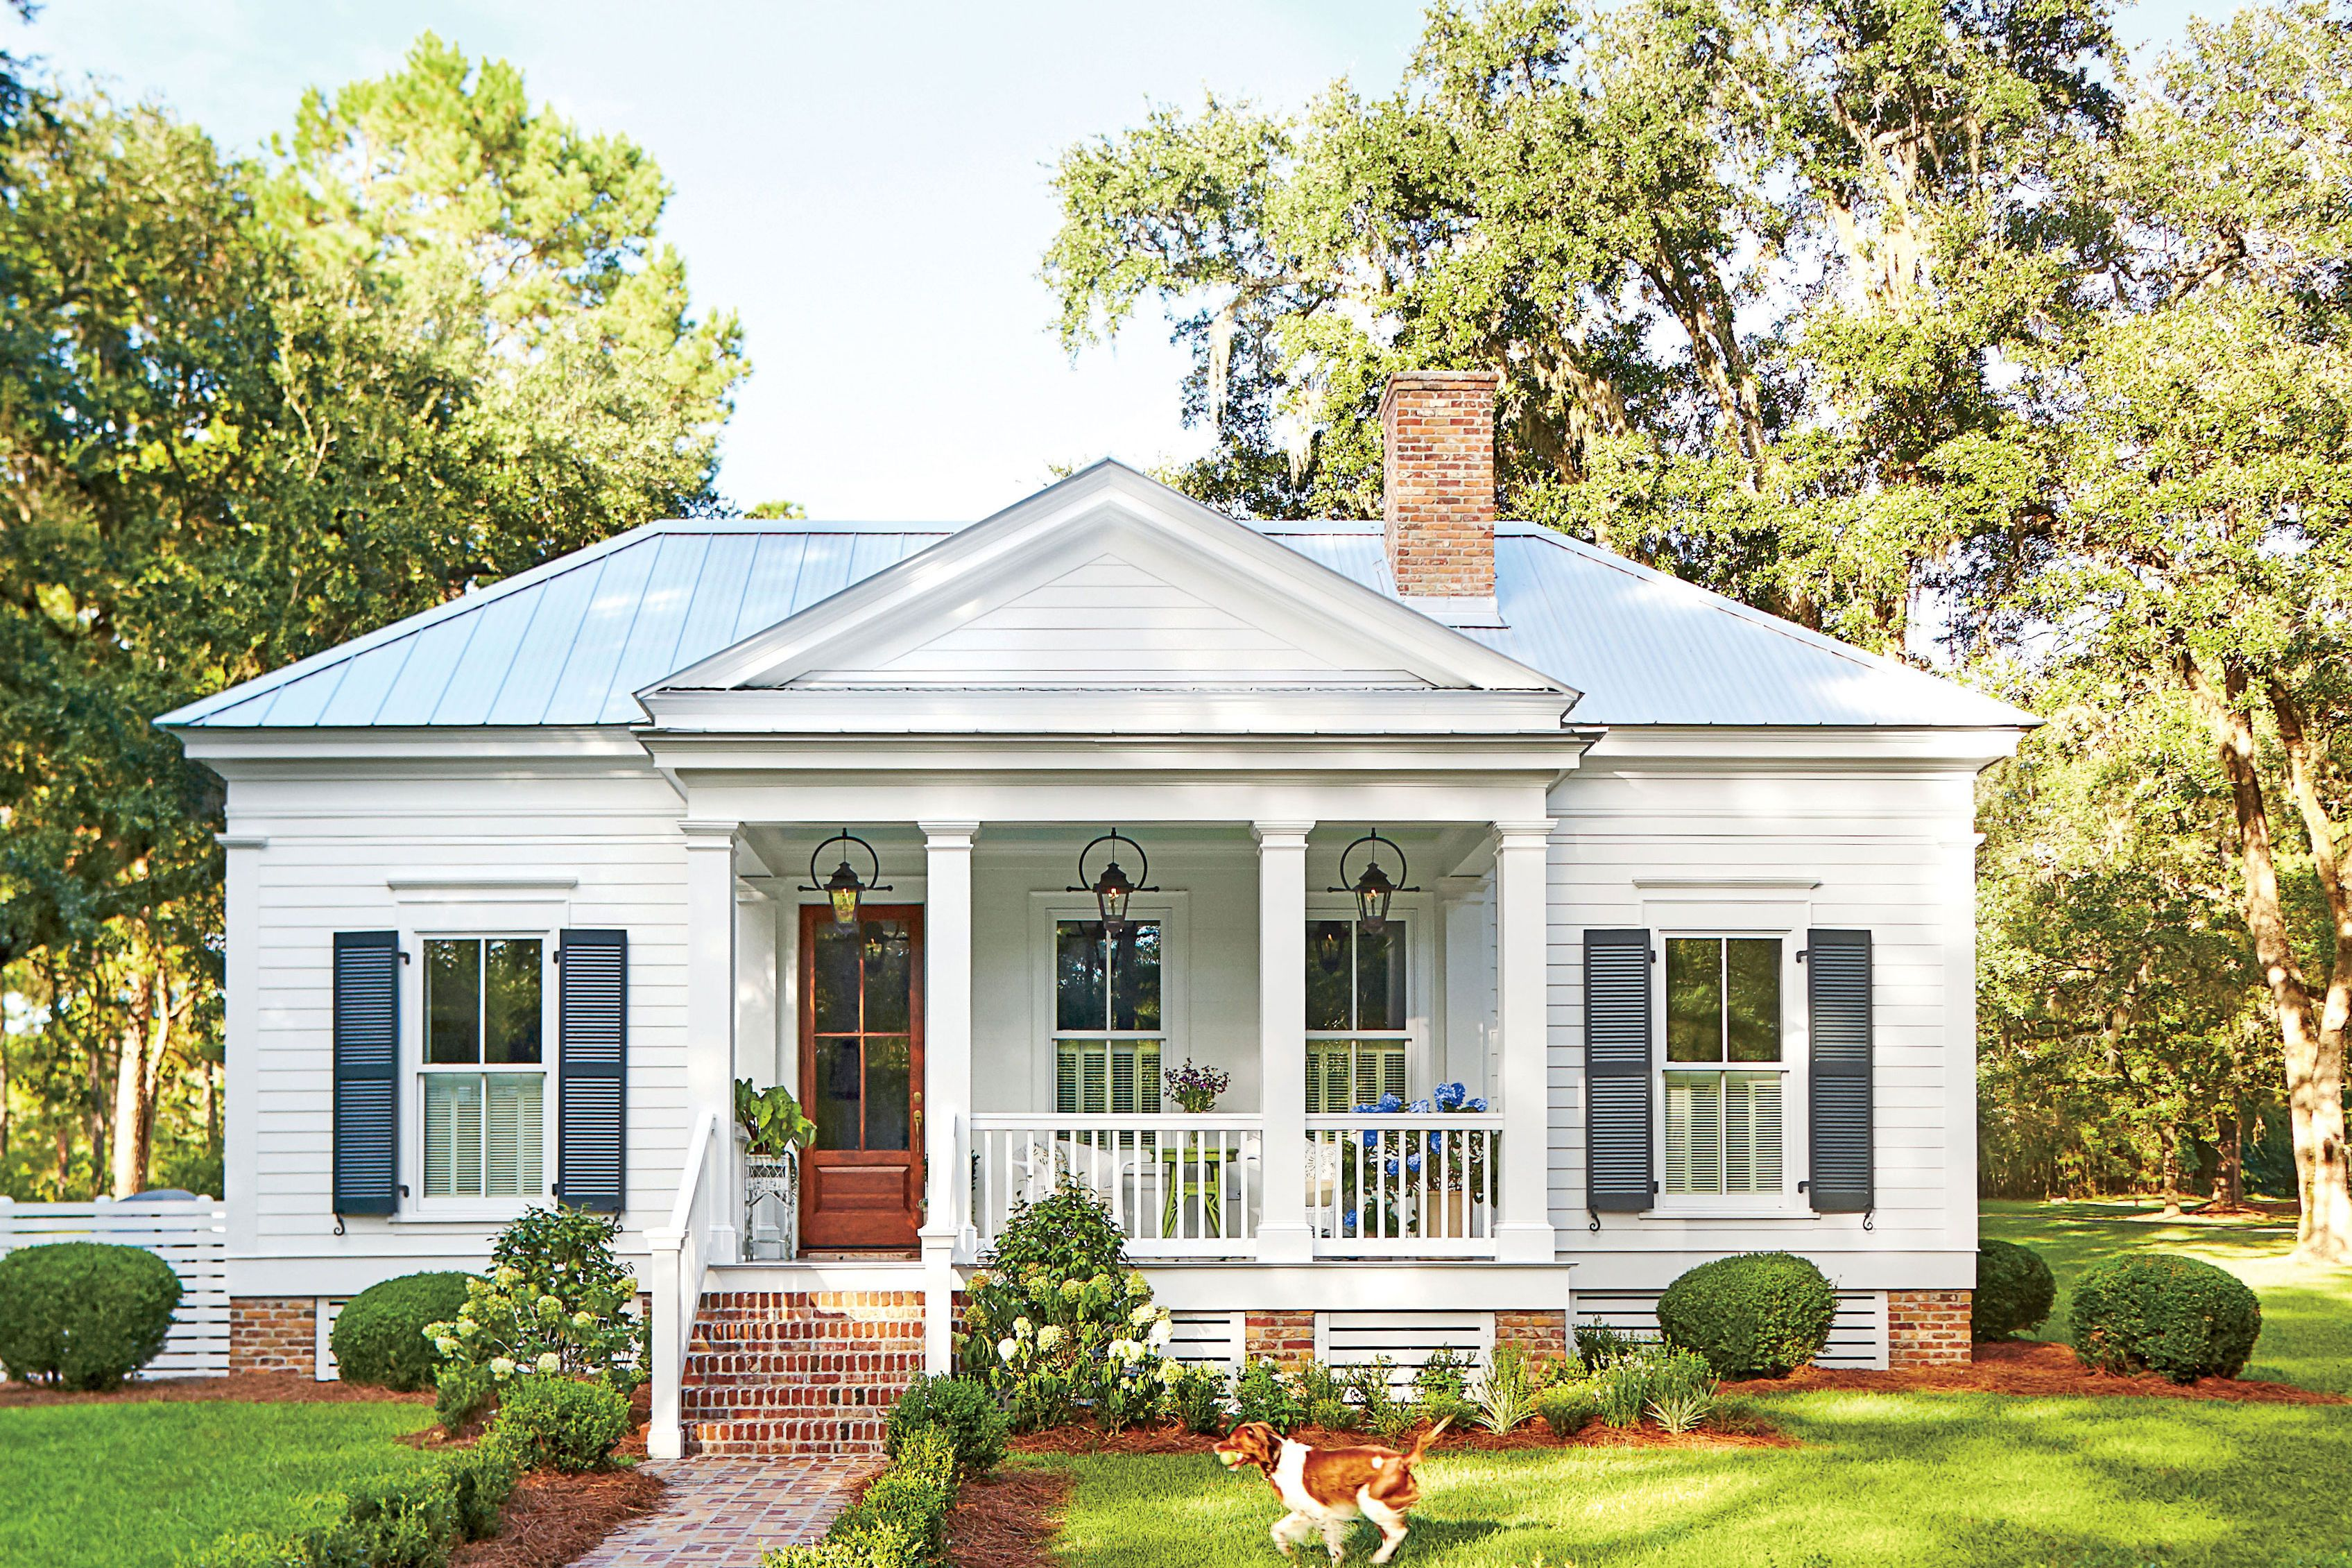 Brandon Ingram Florida Cottage | For the Home | Pinterest ...